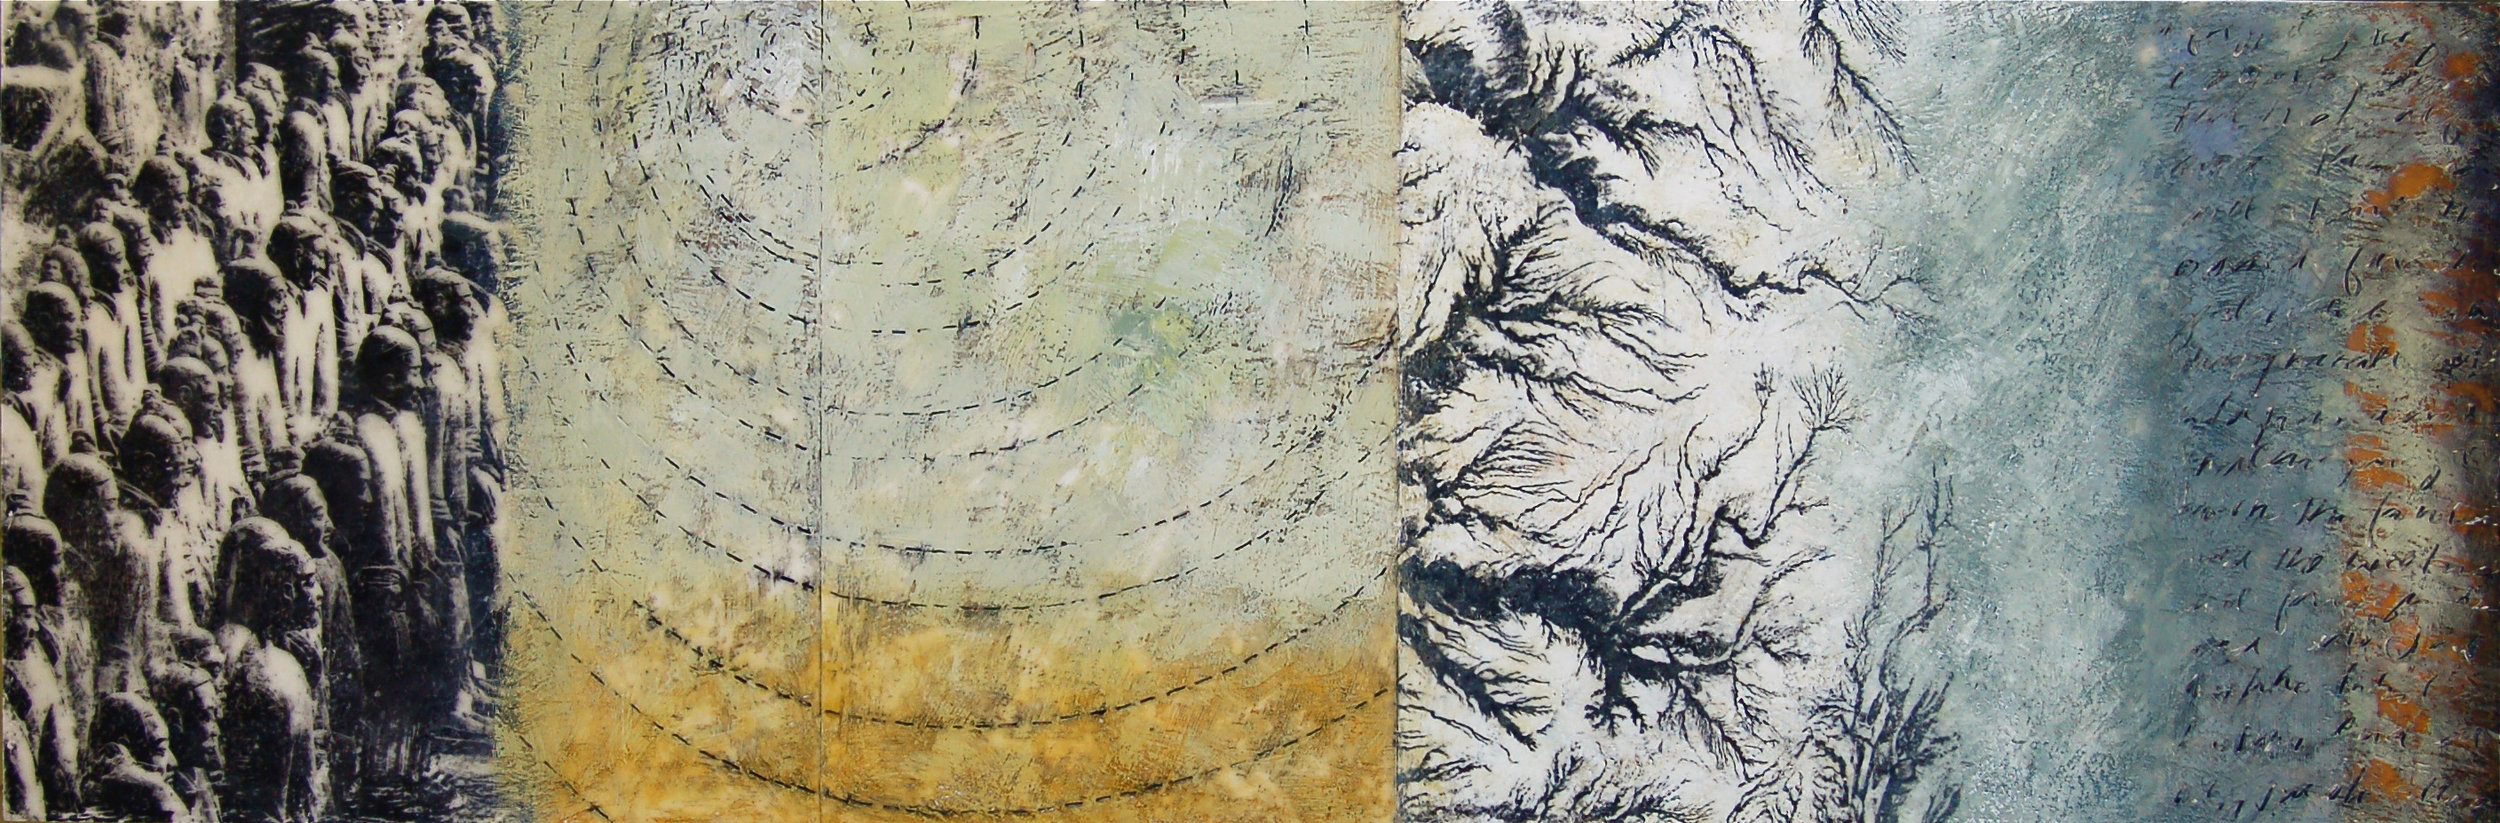 """""""Point To The Unchanging"""" 18"""" x 48"""" x 3"""" Encaustic, toner, oil on panel 2008 ©Amy Guion Clay SOLD"""